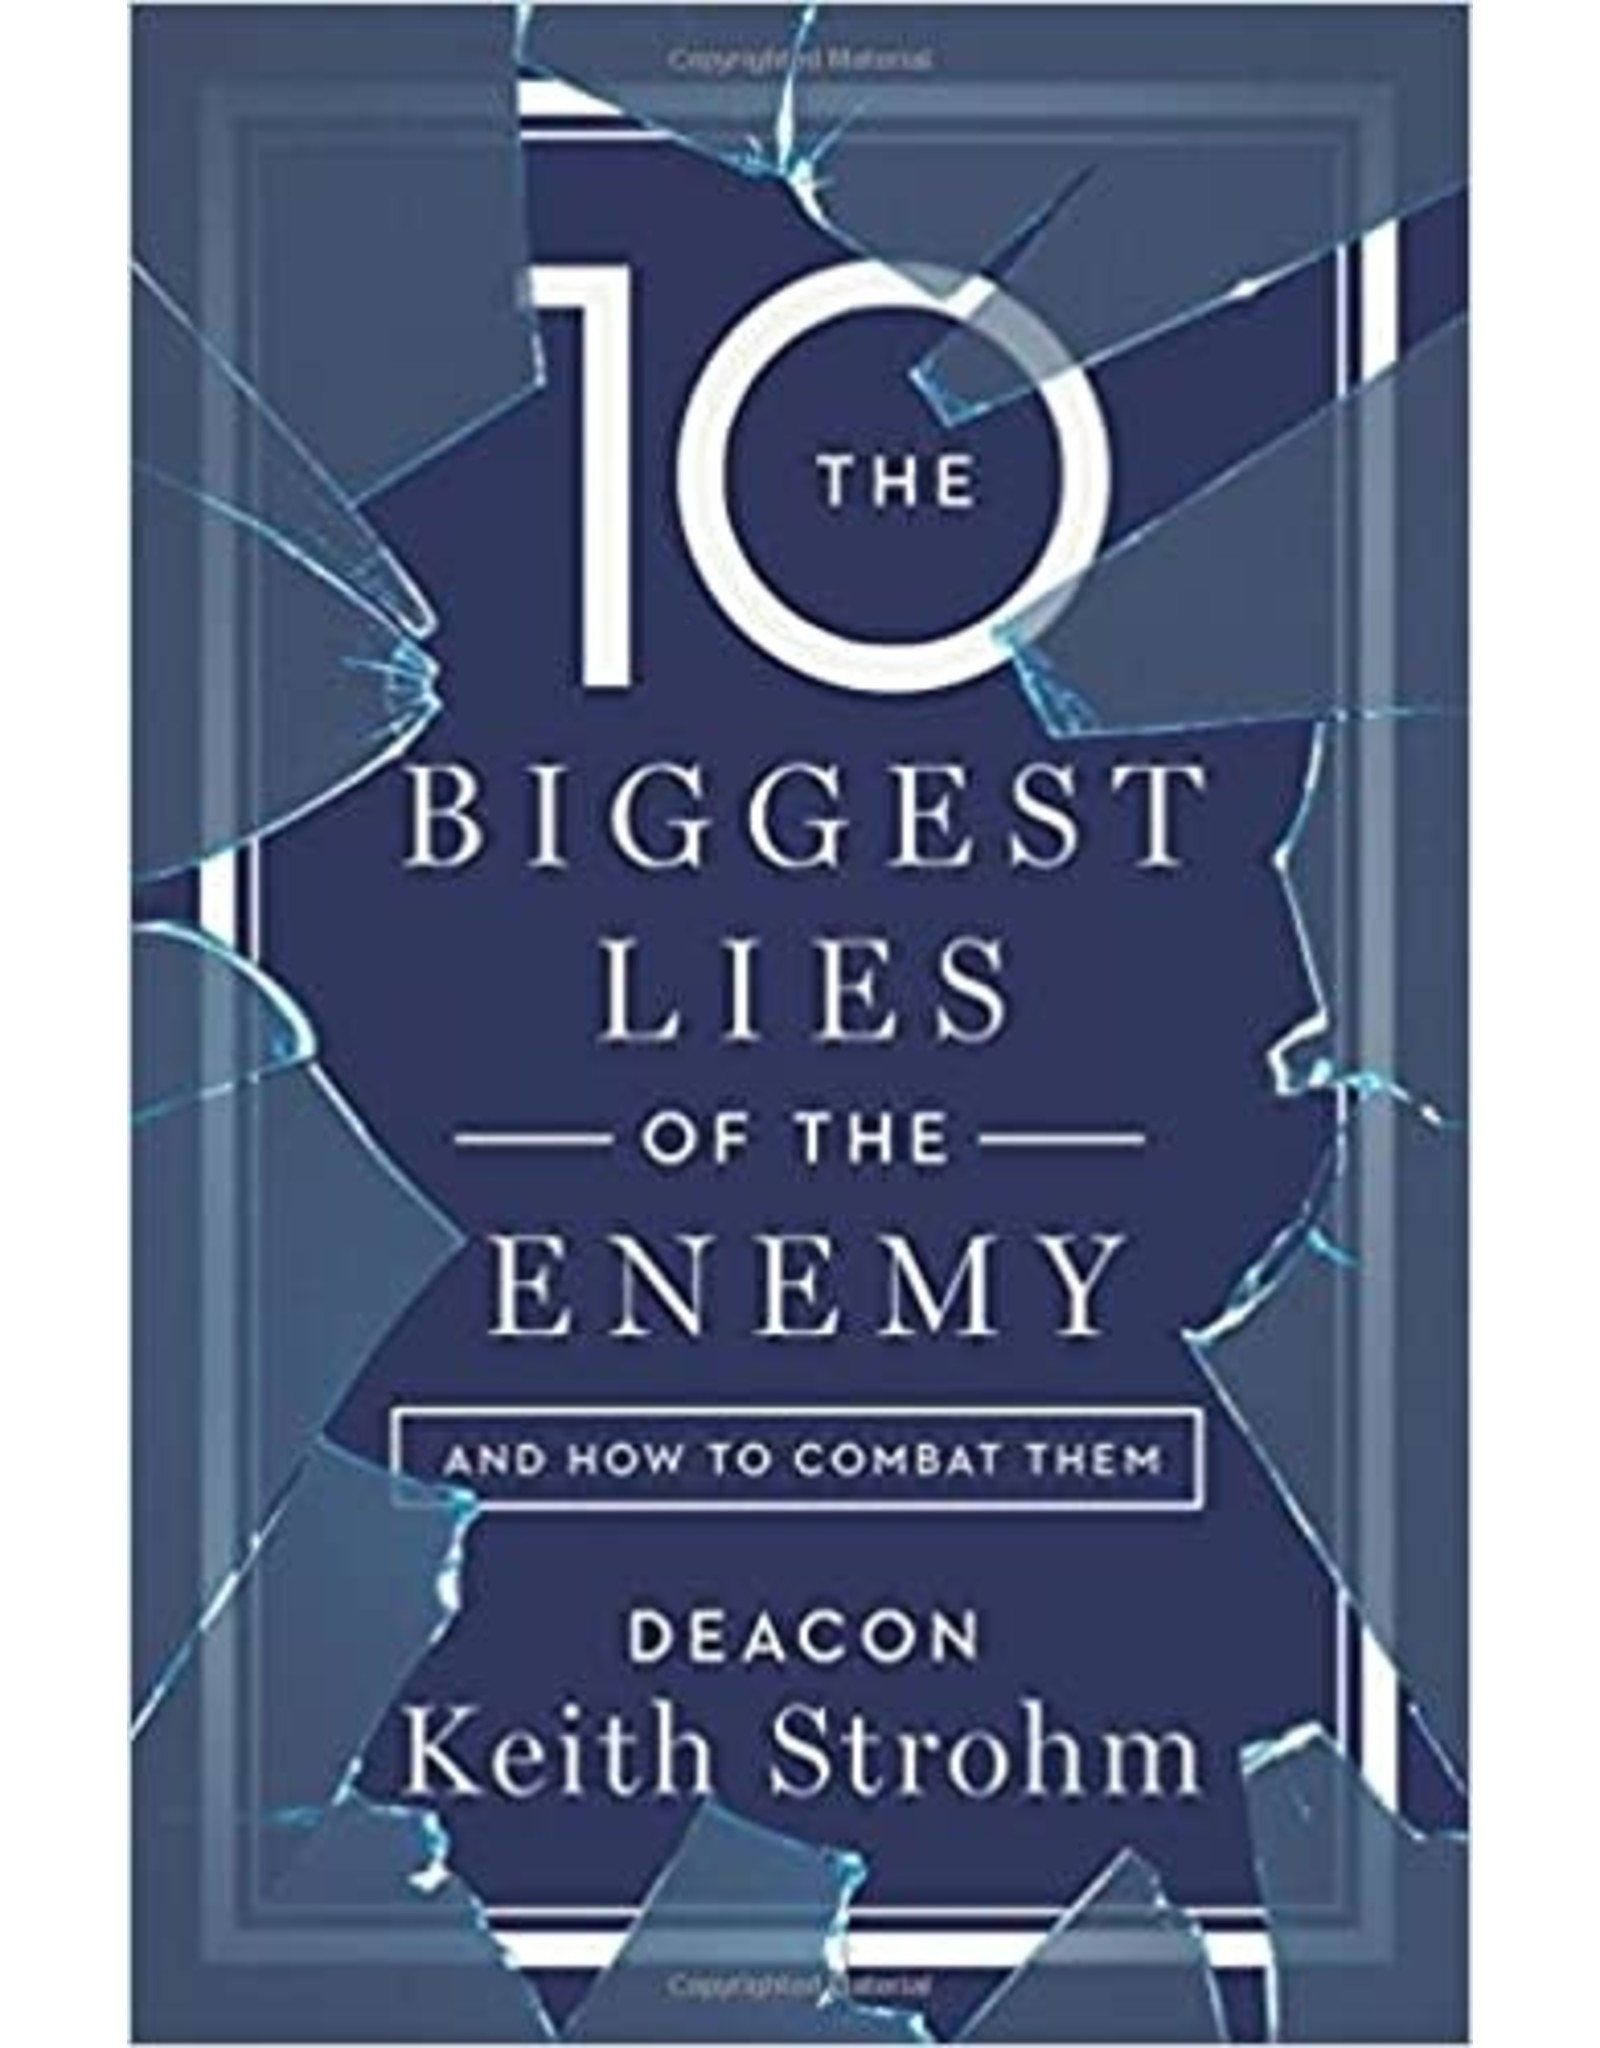 The Ten Biggest Lies of the Enemy & How to Combat Them